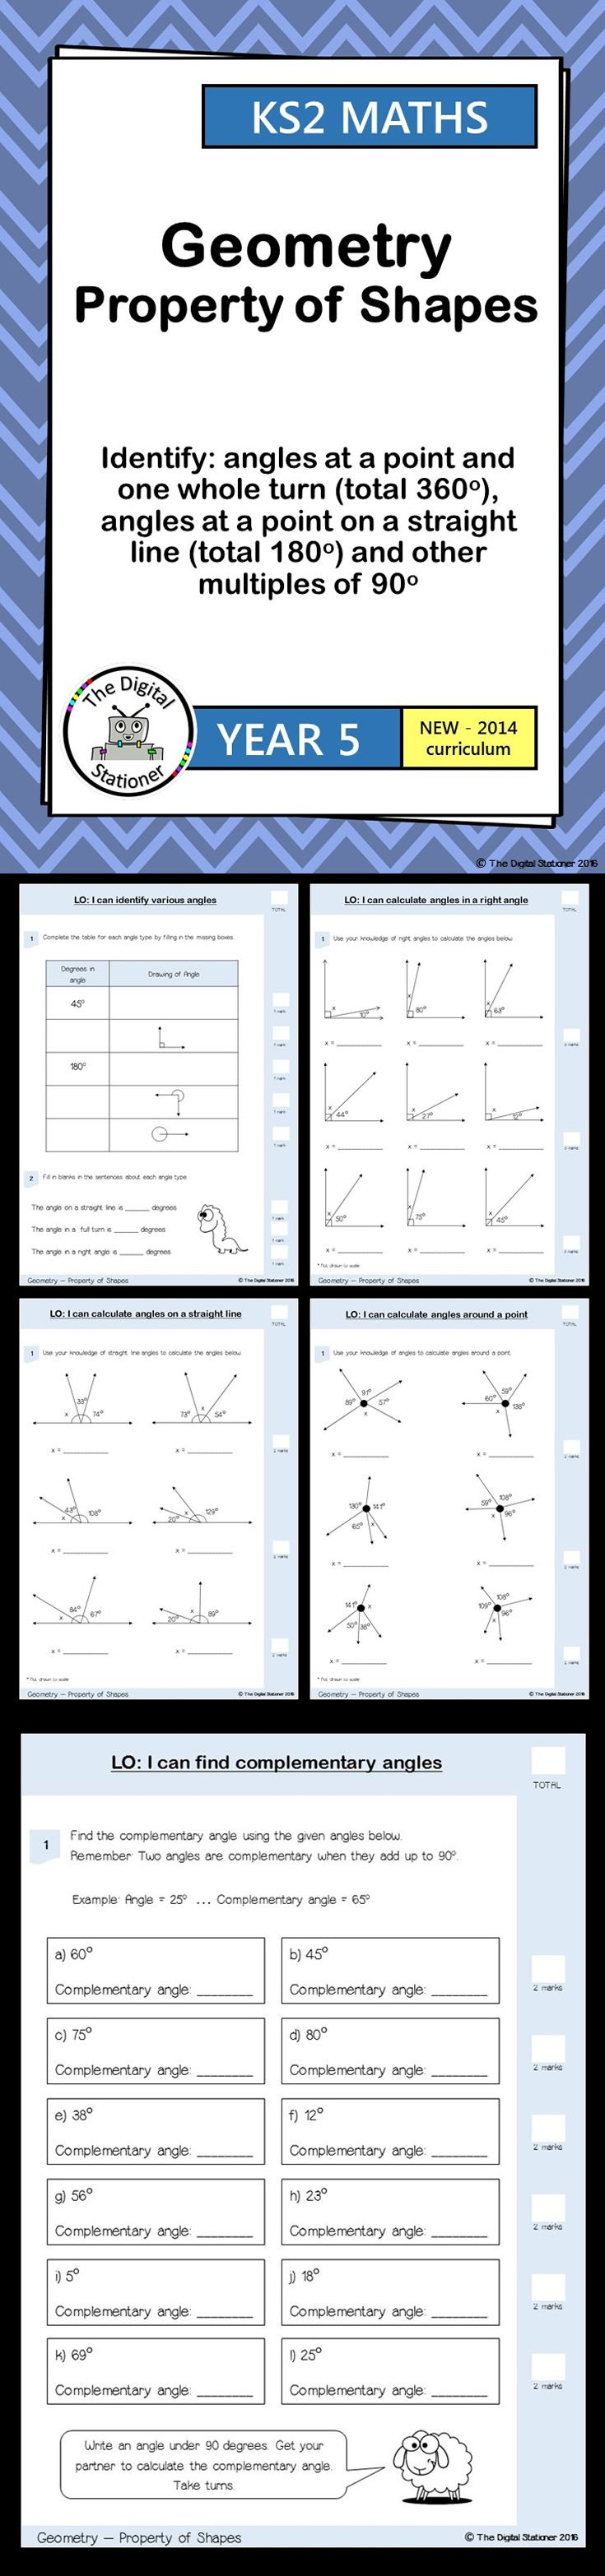 Year 5 Identify angles in full turn, straight line, 90